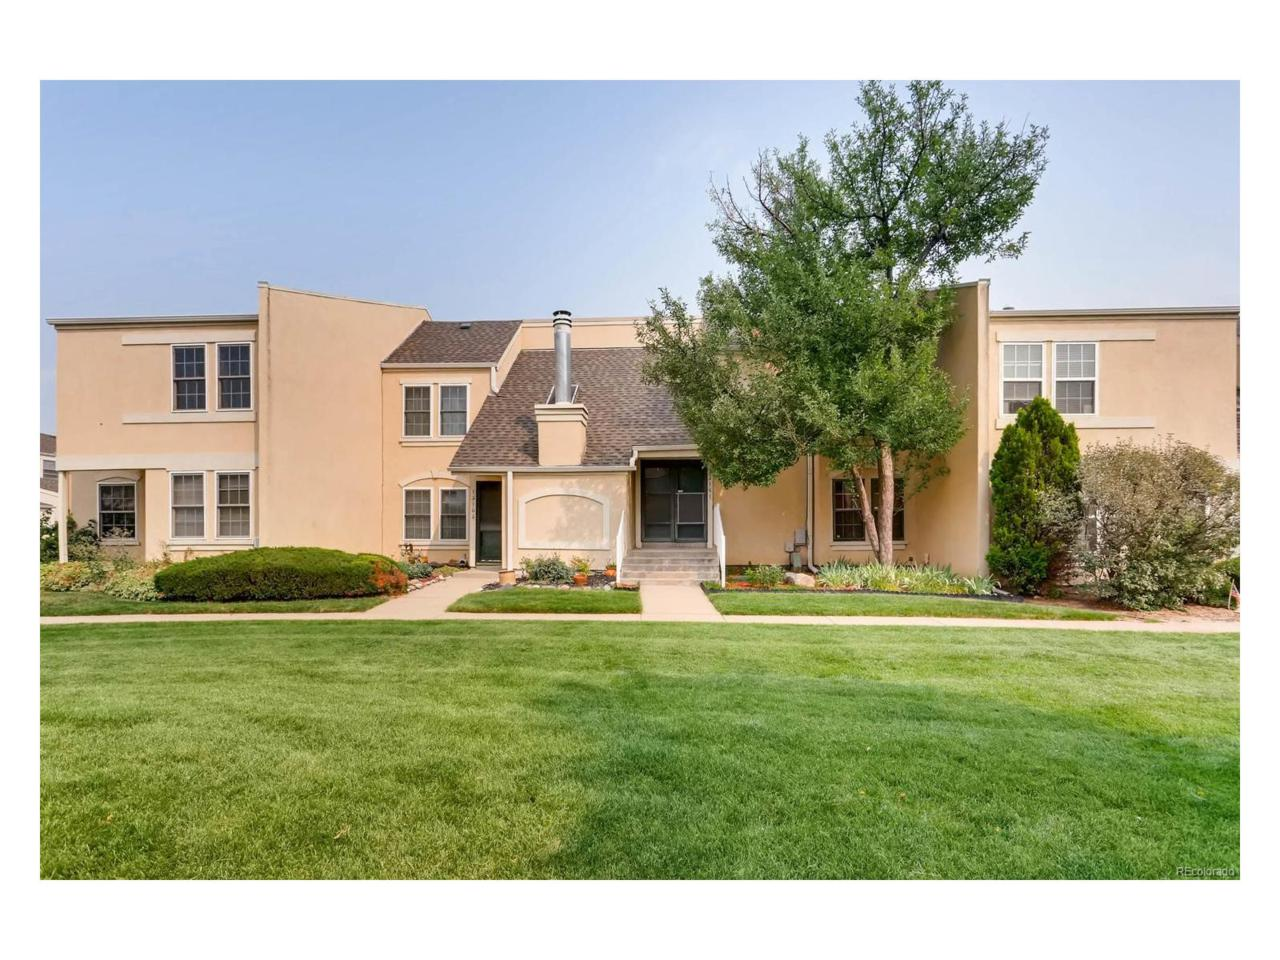 13161 E Bethany Place, Aurora, CO 80014 (MLS #2580781) :: 8z Real Estate